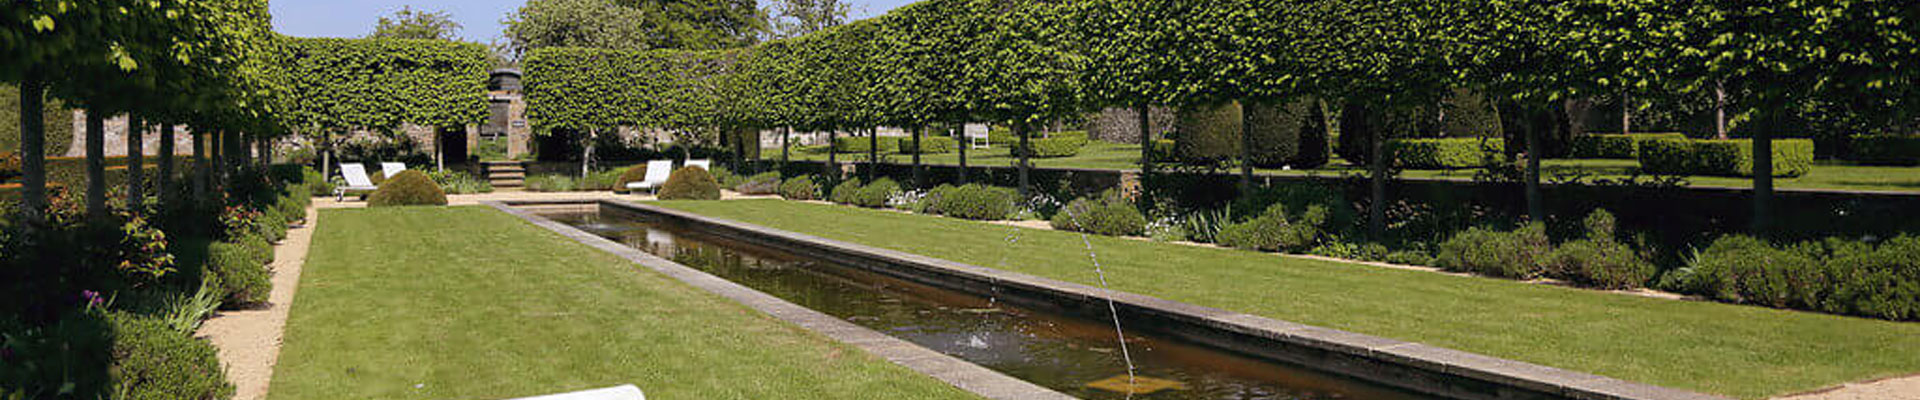 Photo of the pond at Temple Guiting Estates